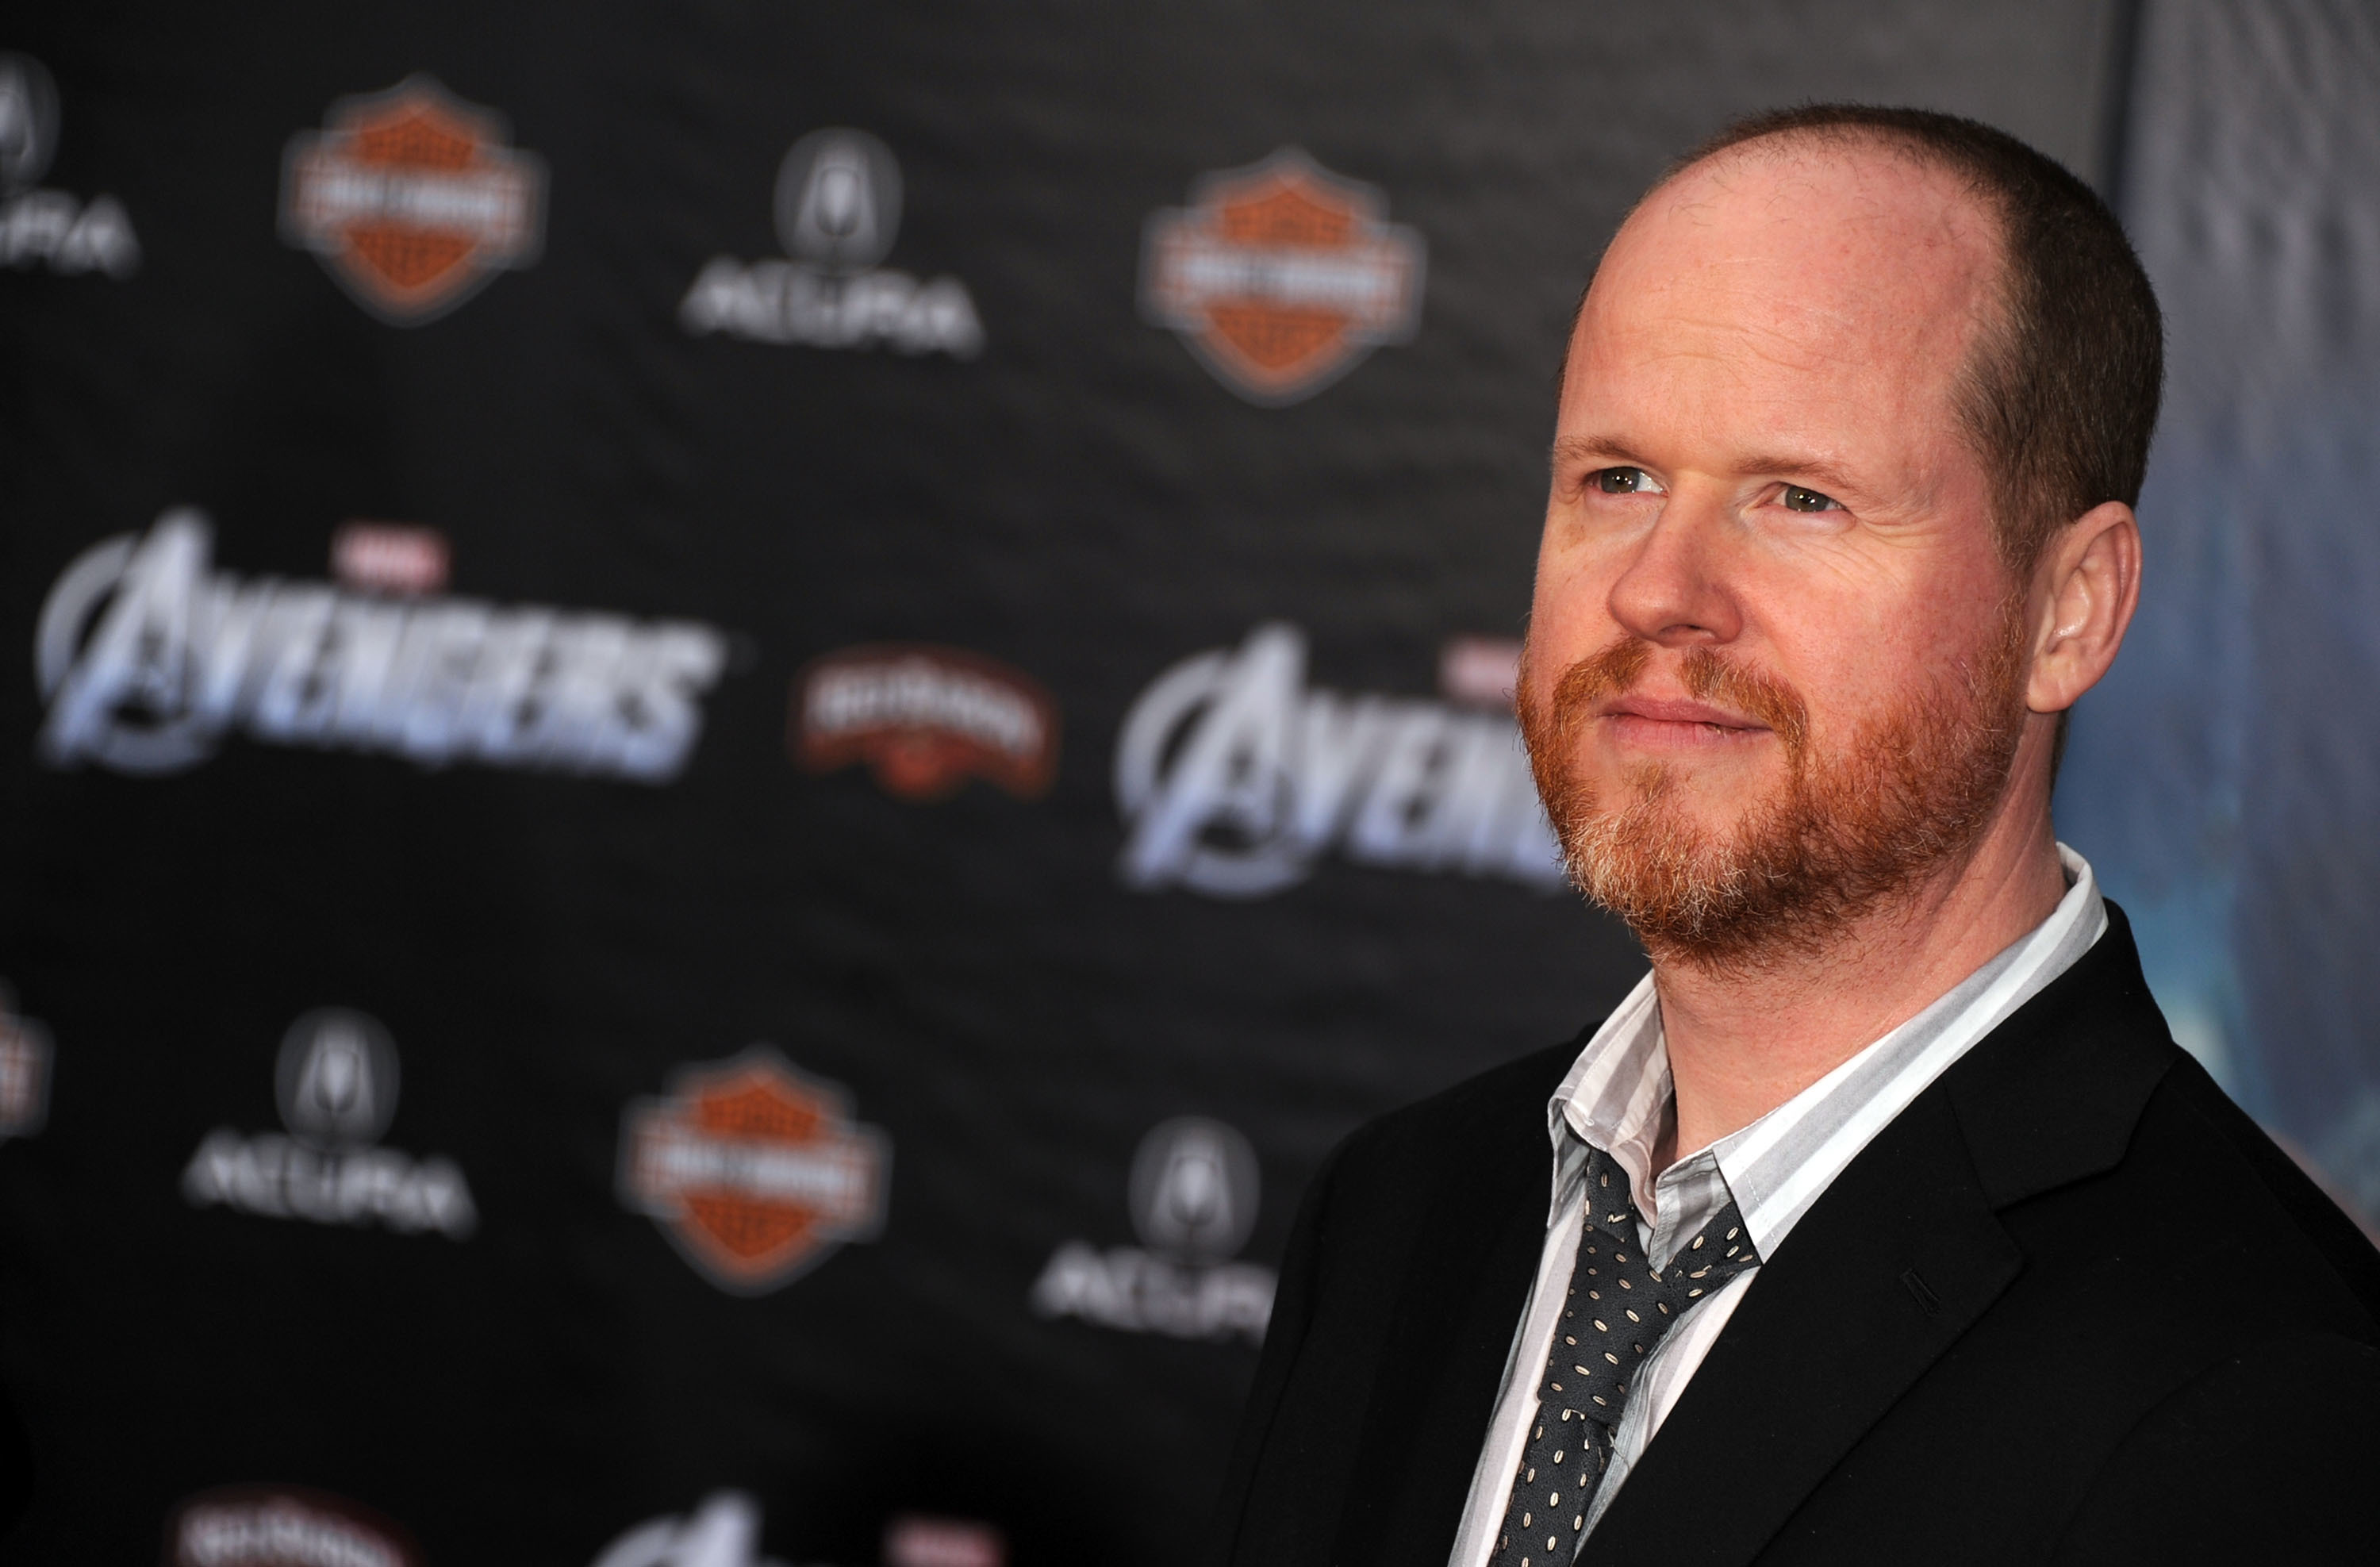 Joss Whedon To Direct 'Batgirl' Film